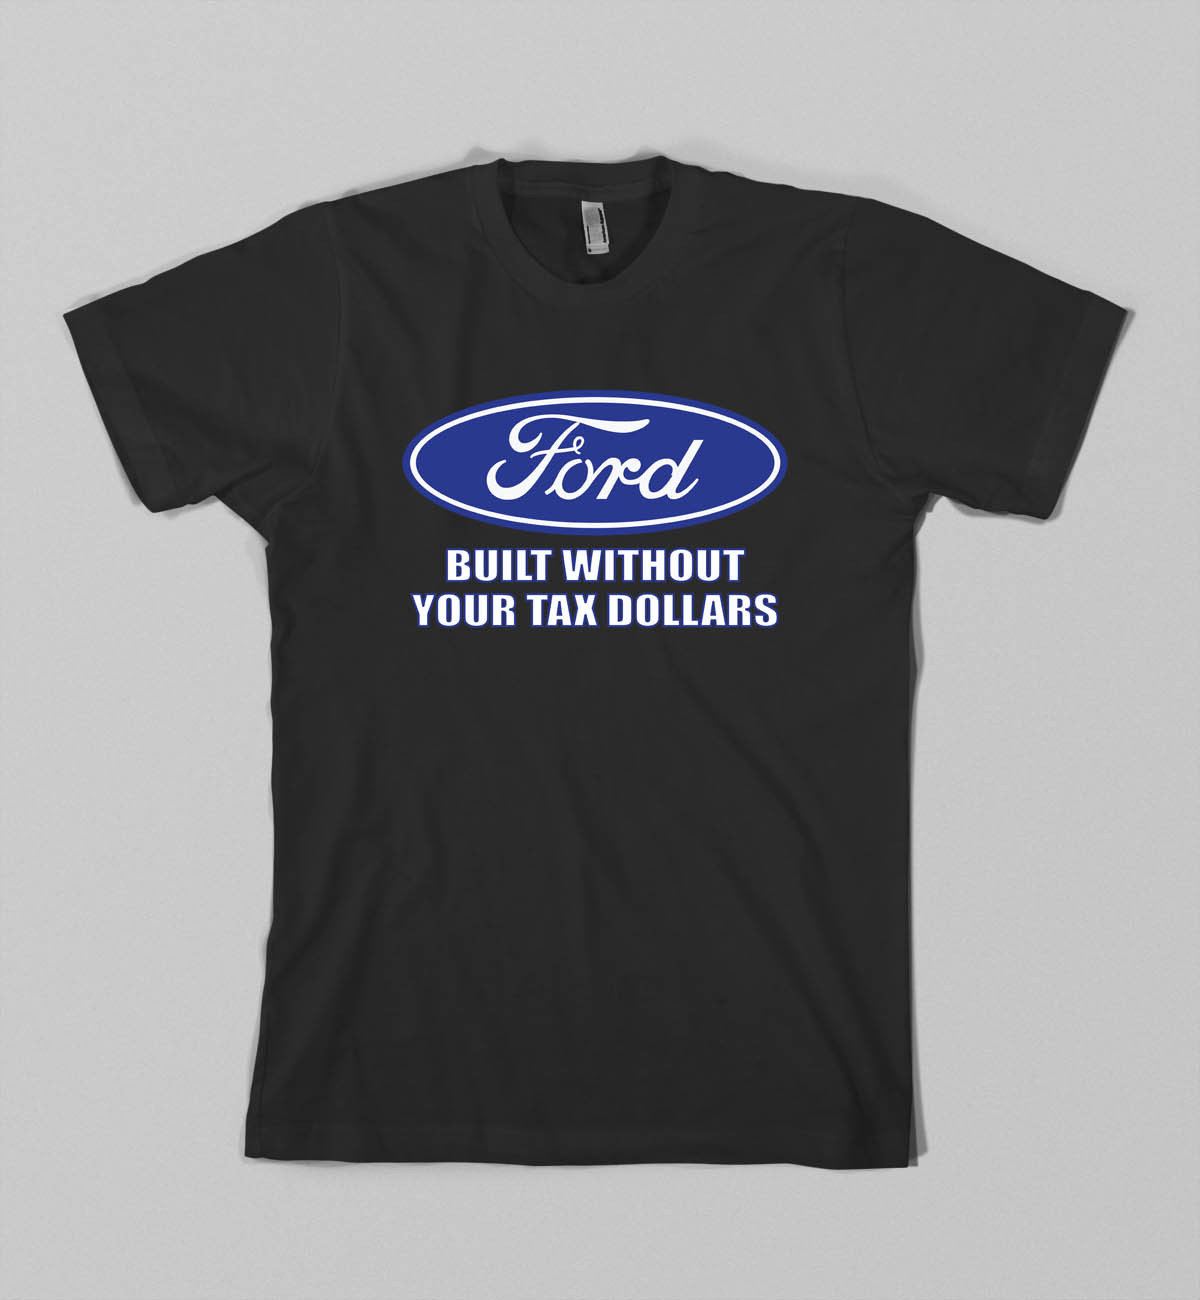 Ford Built without your tax dollars t shirt Adult size Shirts S-3XL Black